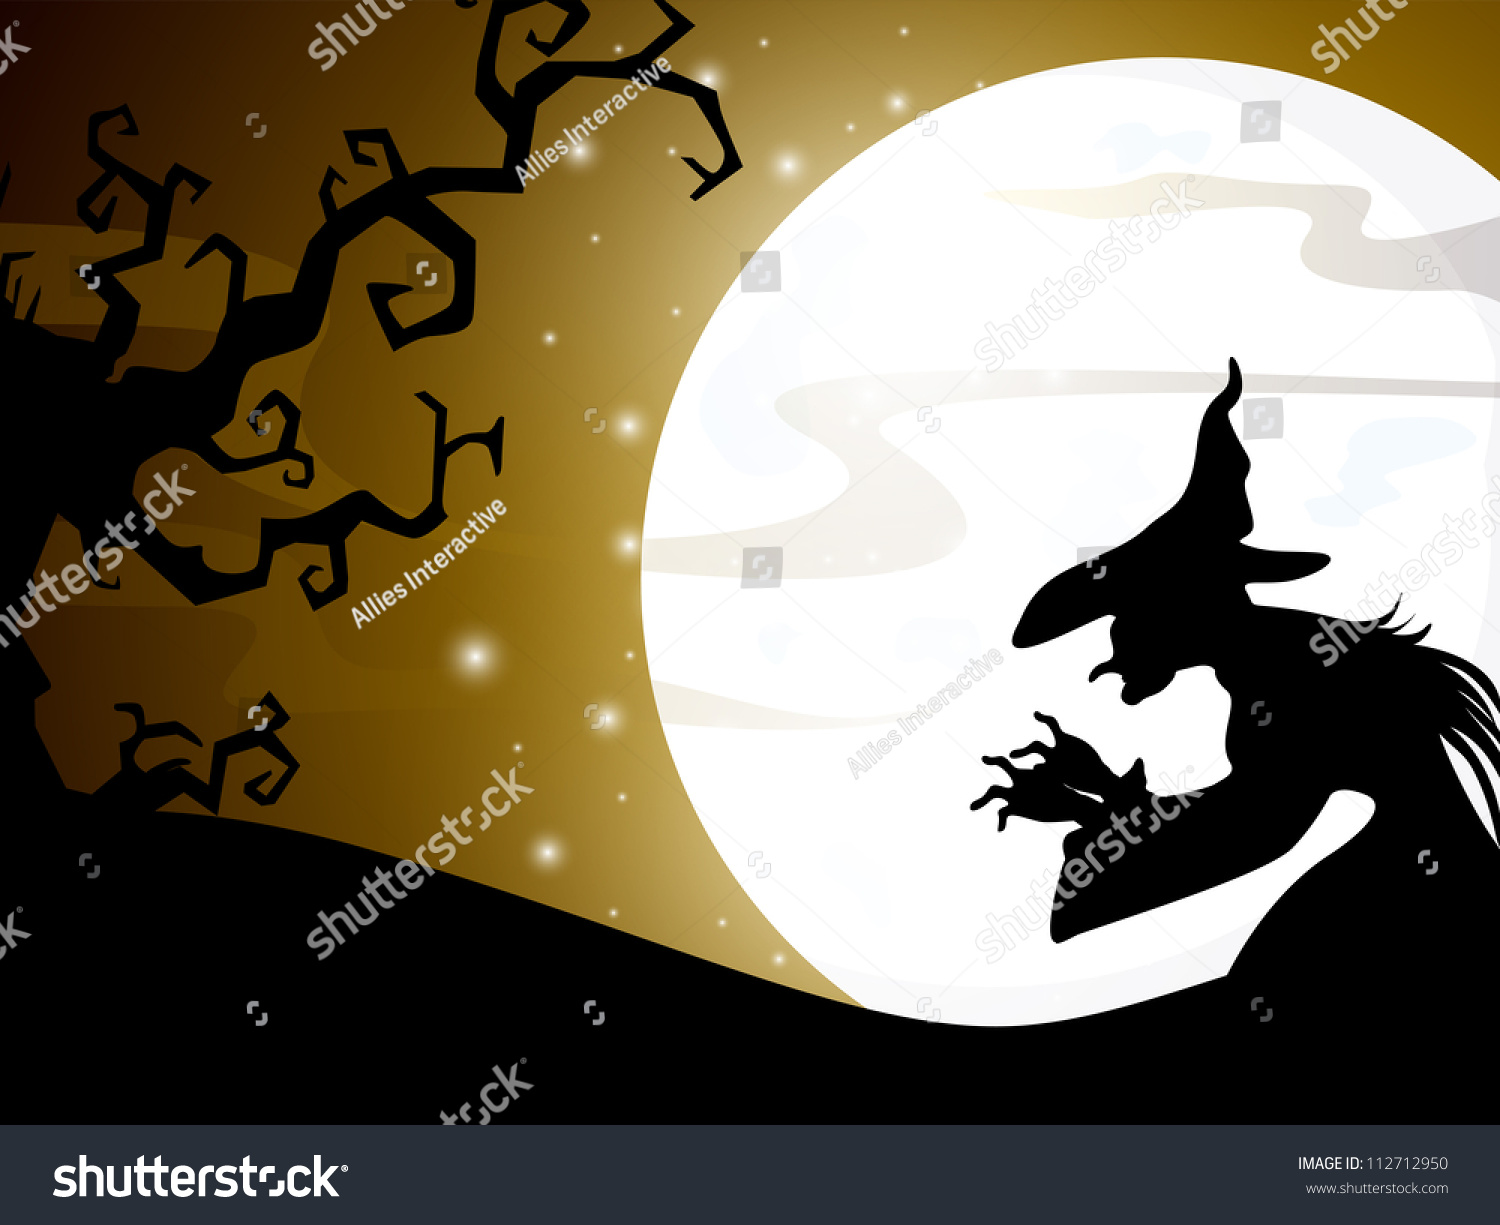 Stock Images Similar To Id 112712950 Halloween Full Moon Night - Save to a lightbox find similar images